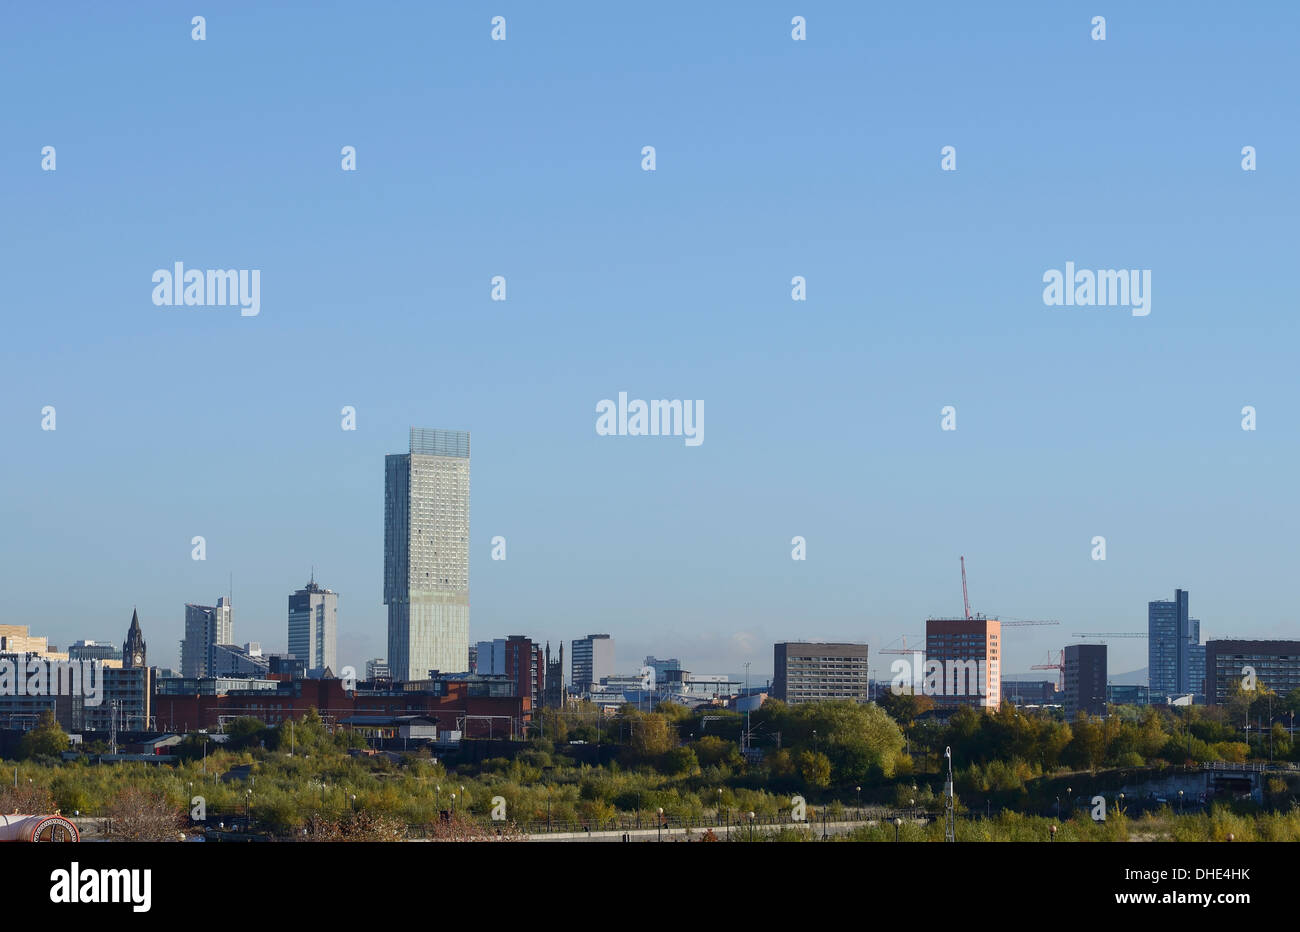 Manchester city centre skyline including the Beetham Tower - Stock Image